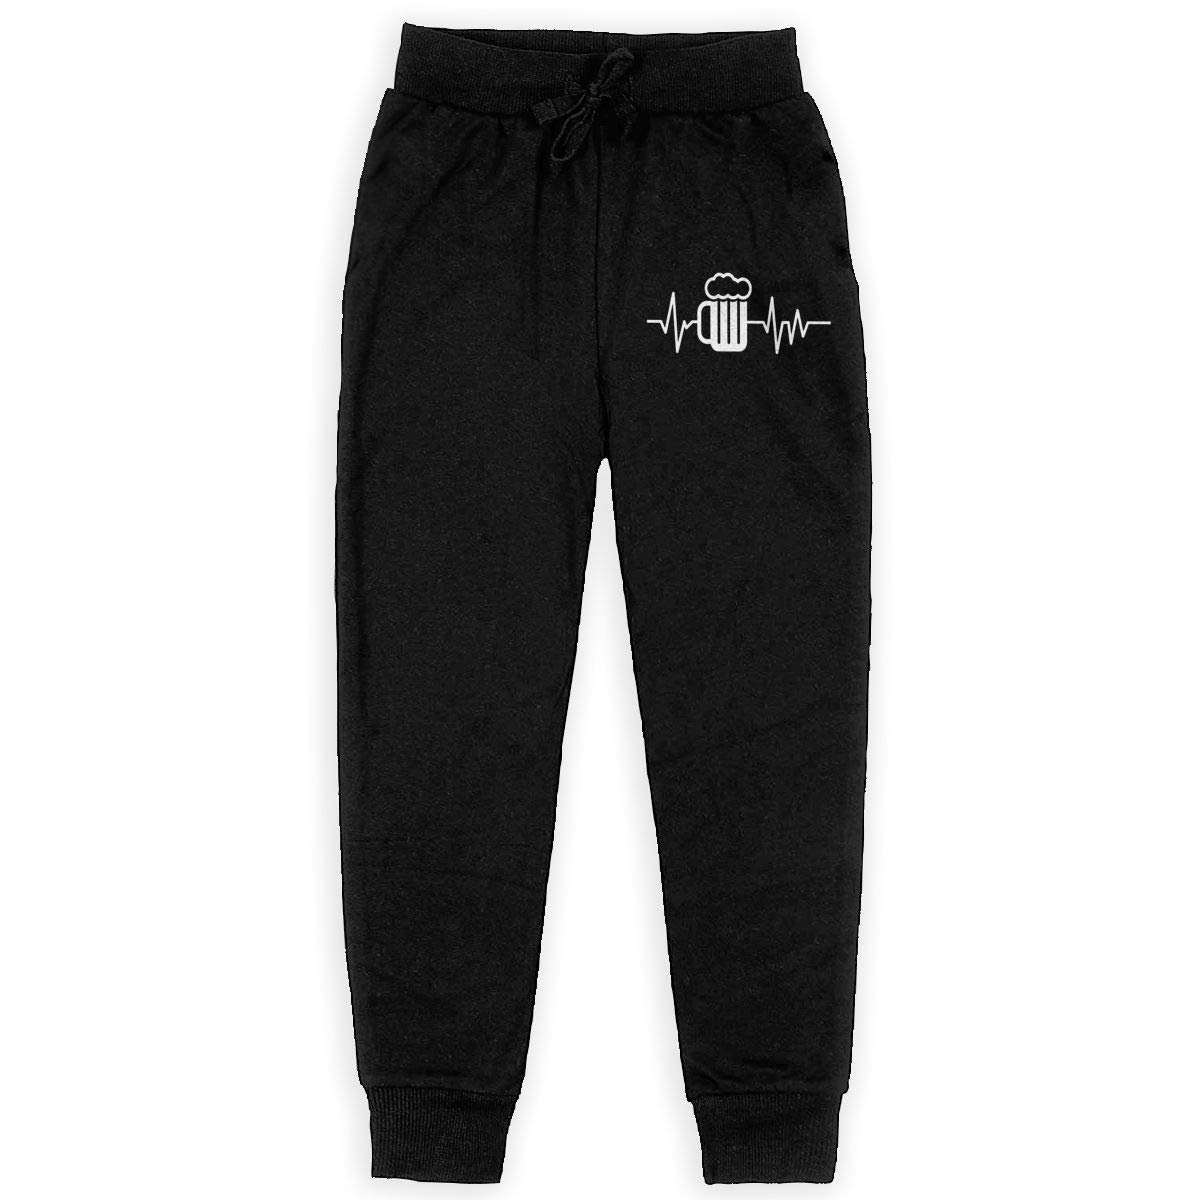 Beer Heartbeat Soft//Cozy Sweatpants Teenager Jogger Pants for Teen Boy